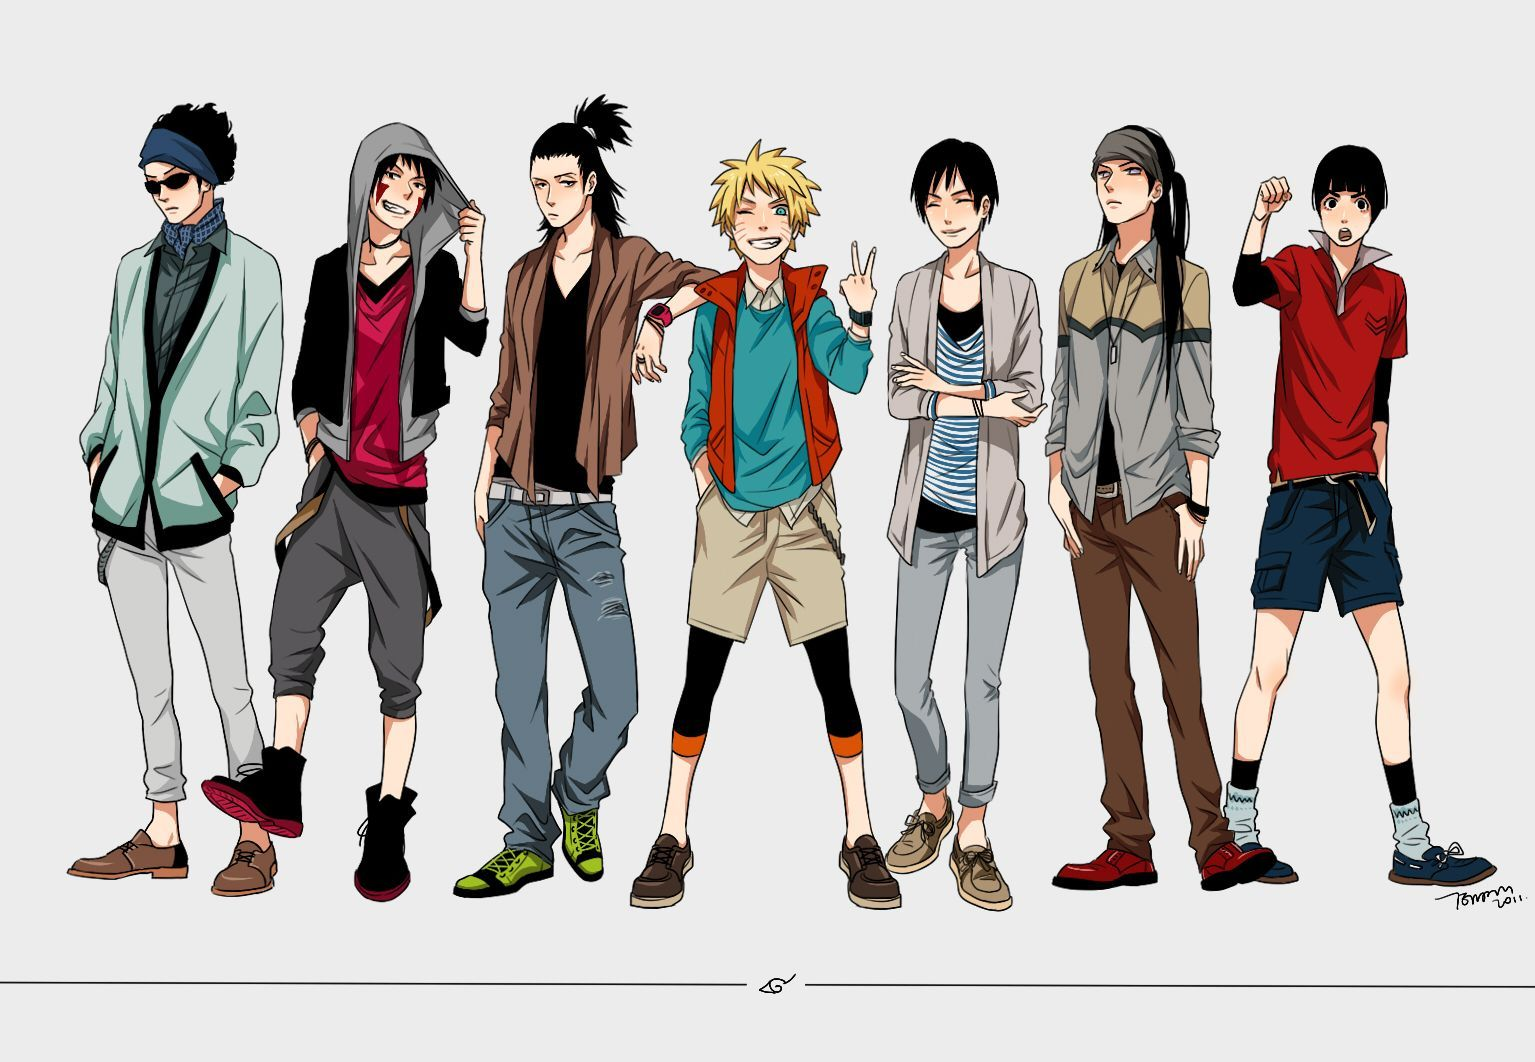 Anime Wearing Cool Clothing Wallpapers   Wallpaper Cave